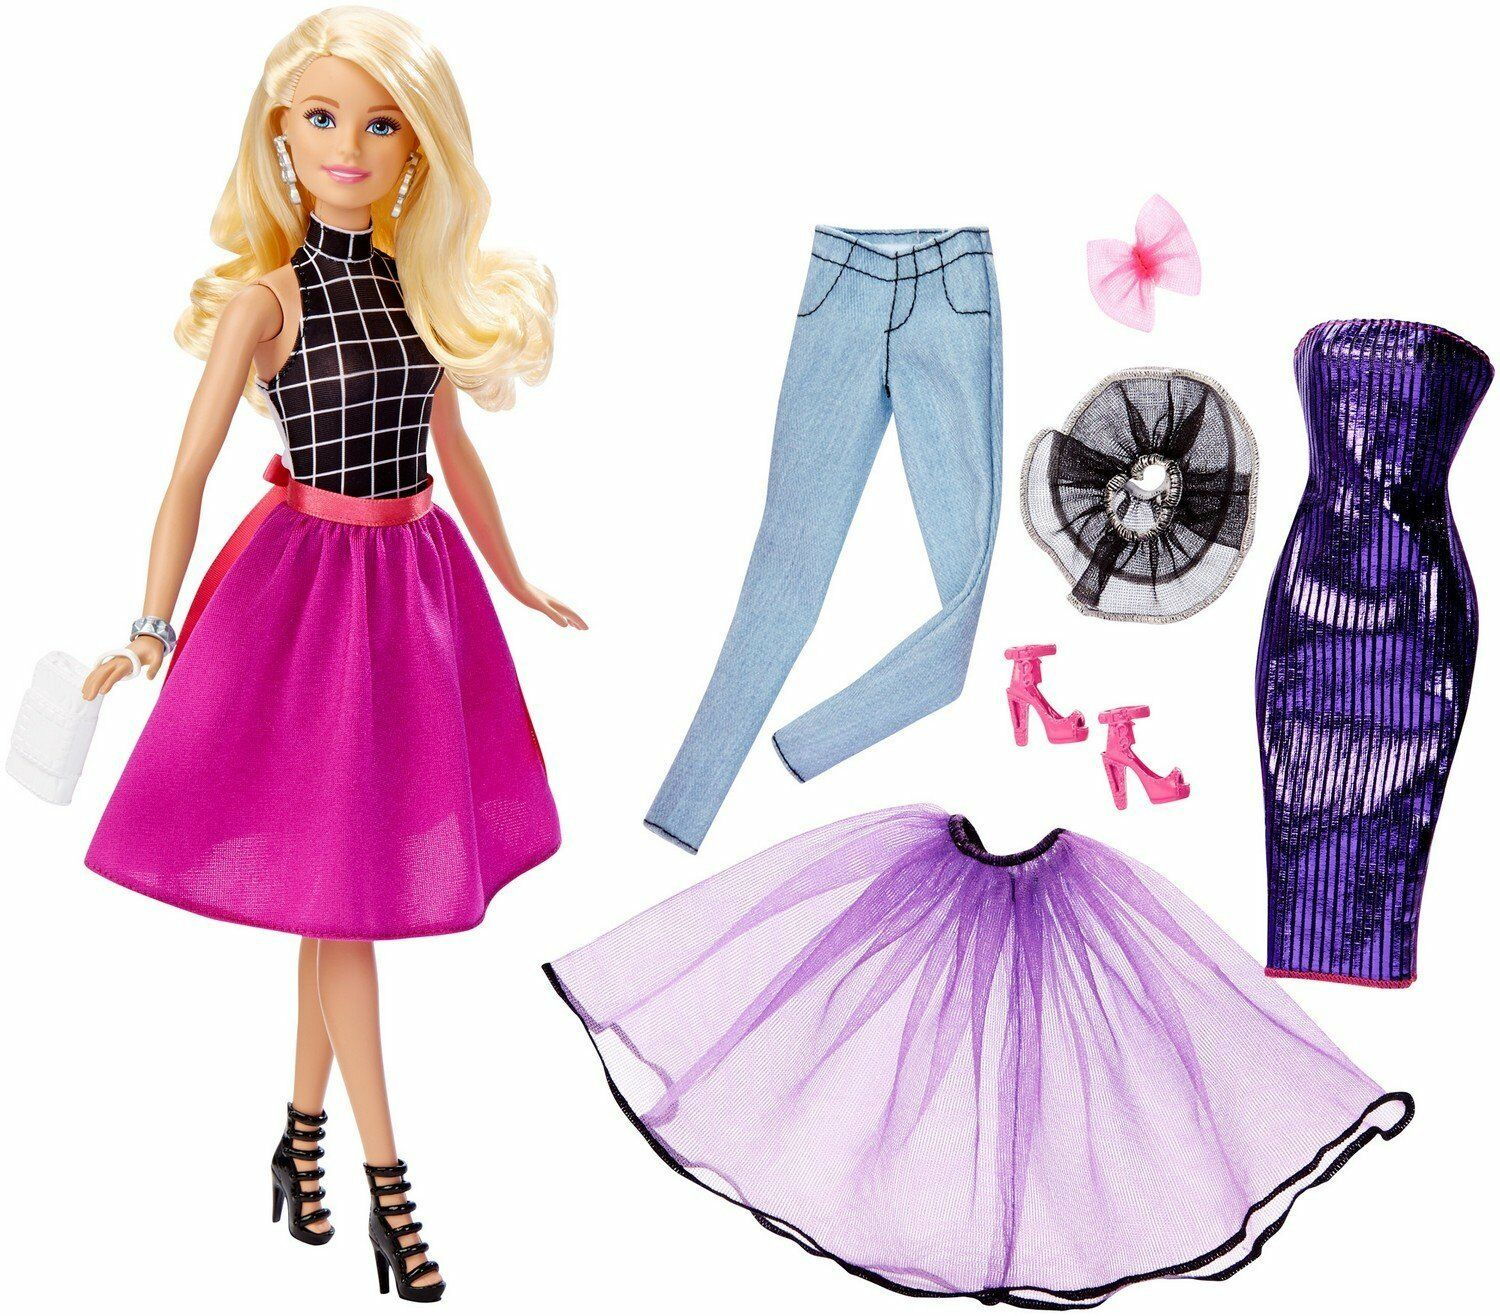 Barbie Fashion Mix 'N Match Doll, Blonde